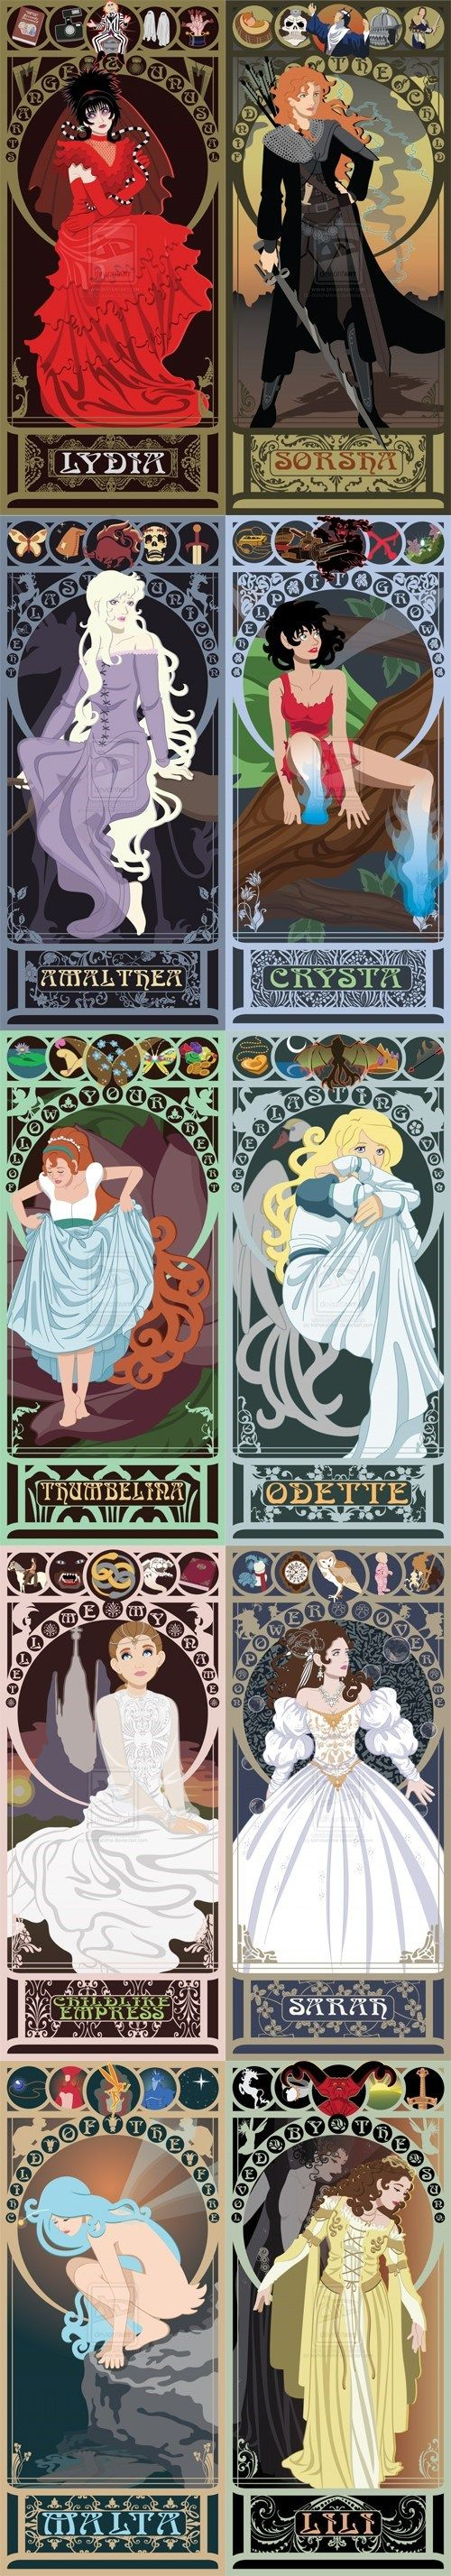 I love Mucha style prints . Fantasy Heroines From the '80s and '90s. Sorcha's my favorite